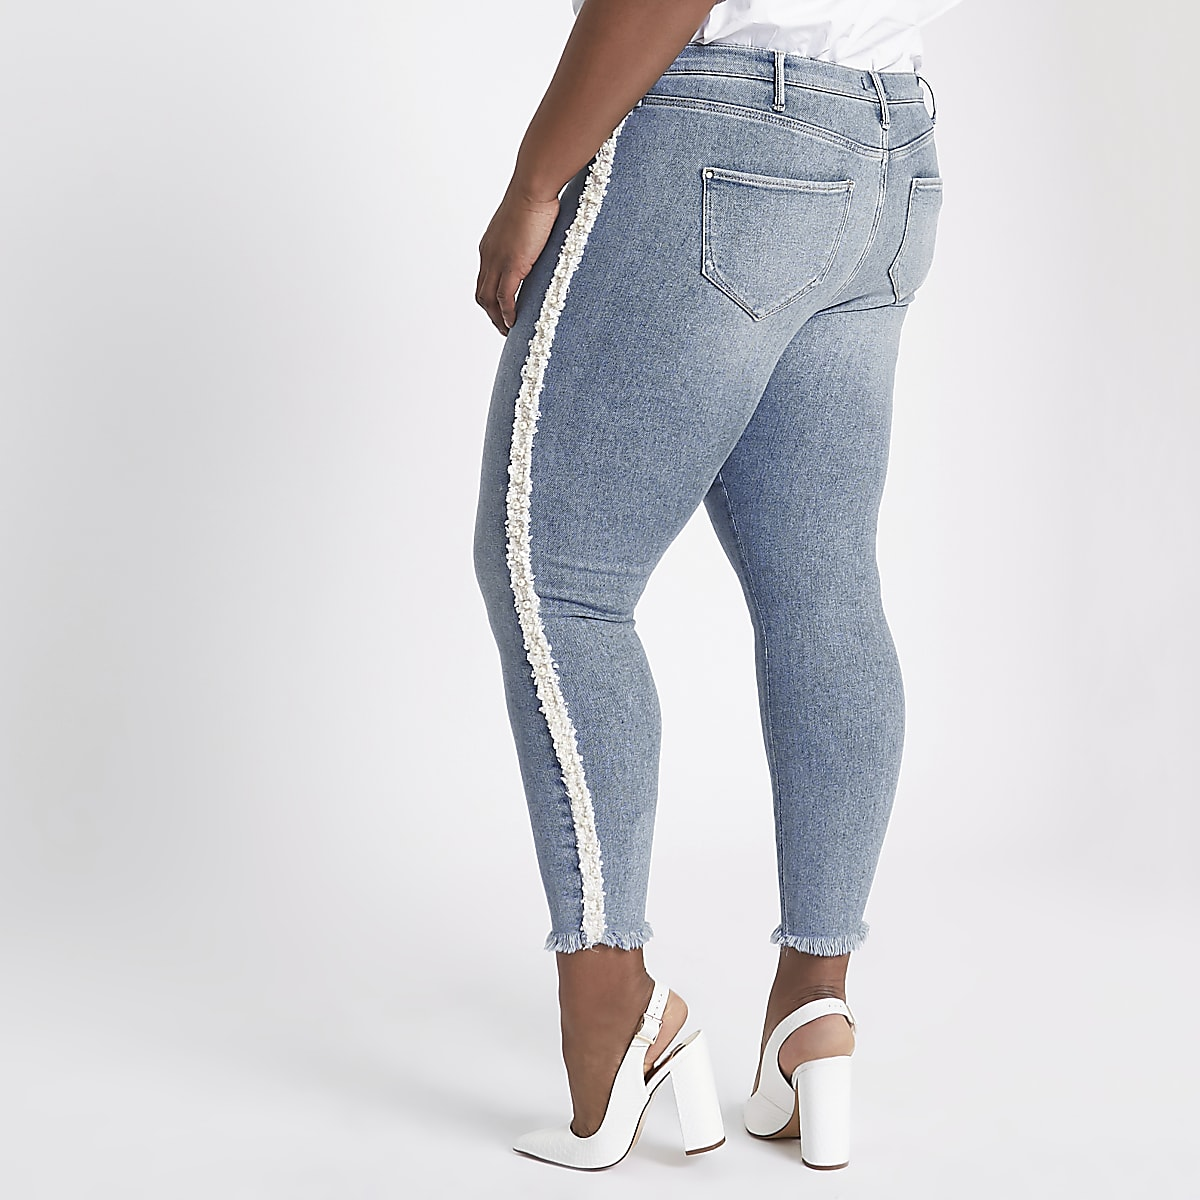 89670c2afc680 Plus Blue Molly pearl embellished jeggings - Jeggings - Jeans - women